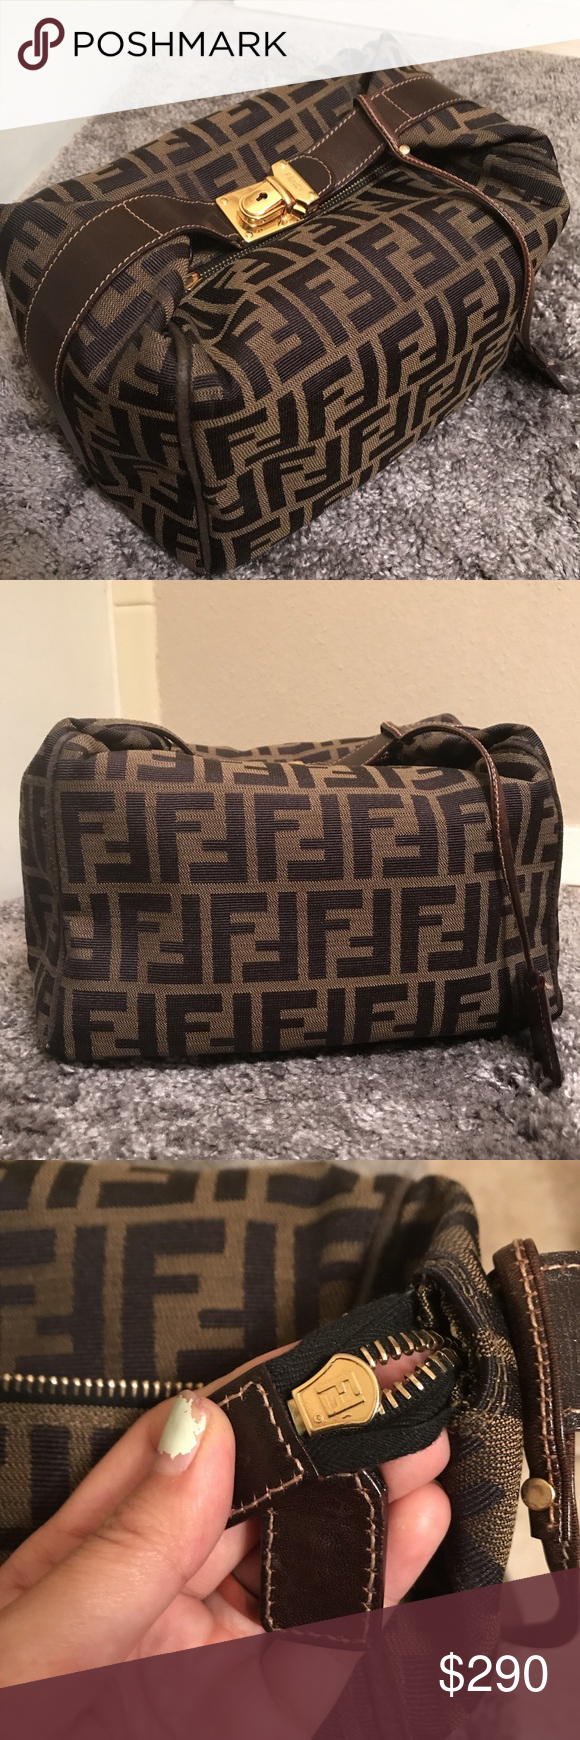 Vintage Fendi Zucca pouch or hand carried bag Fendi